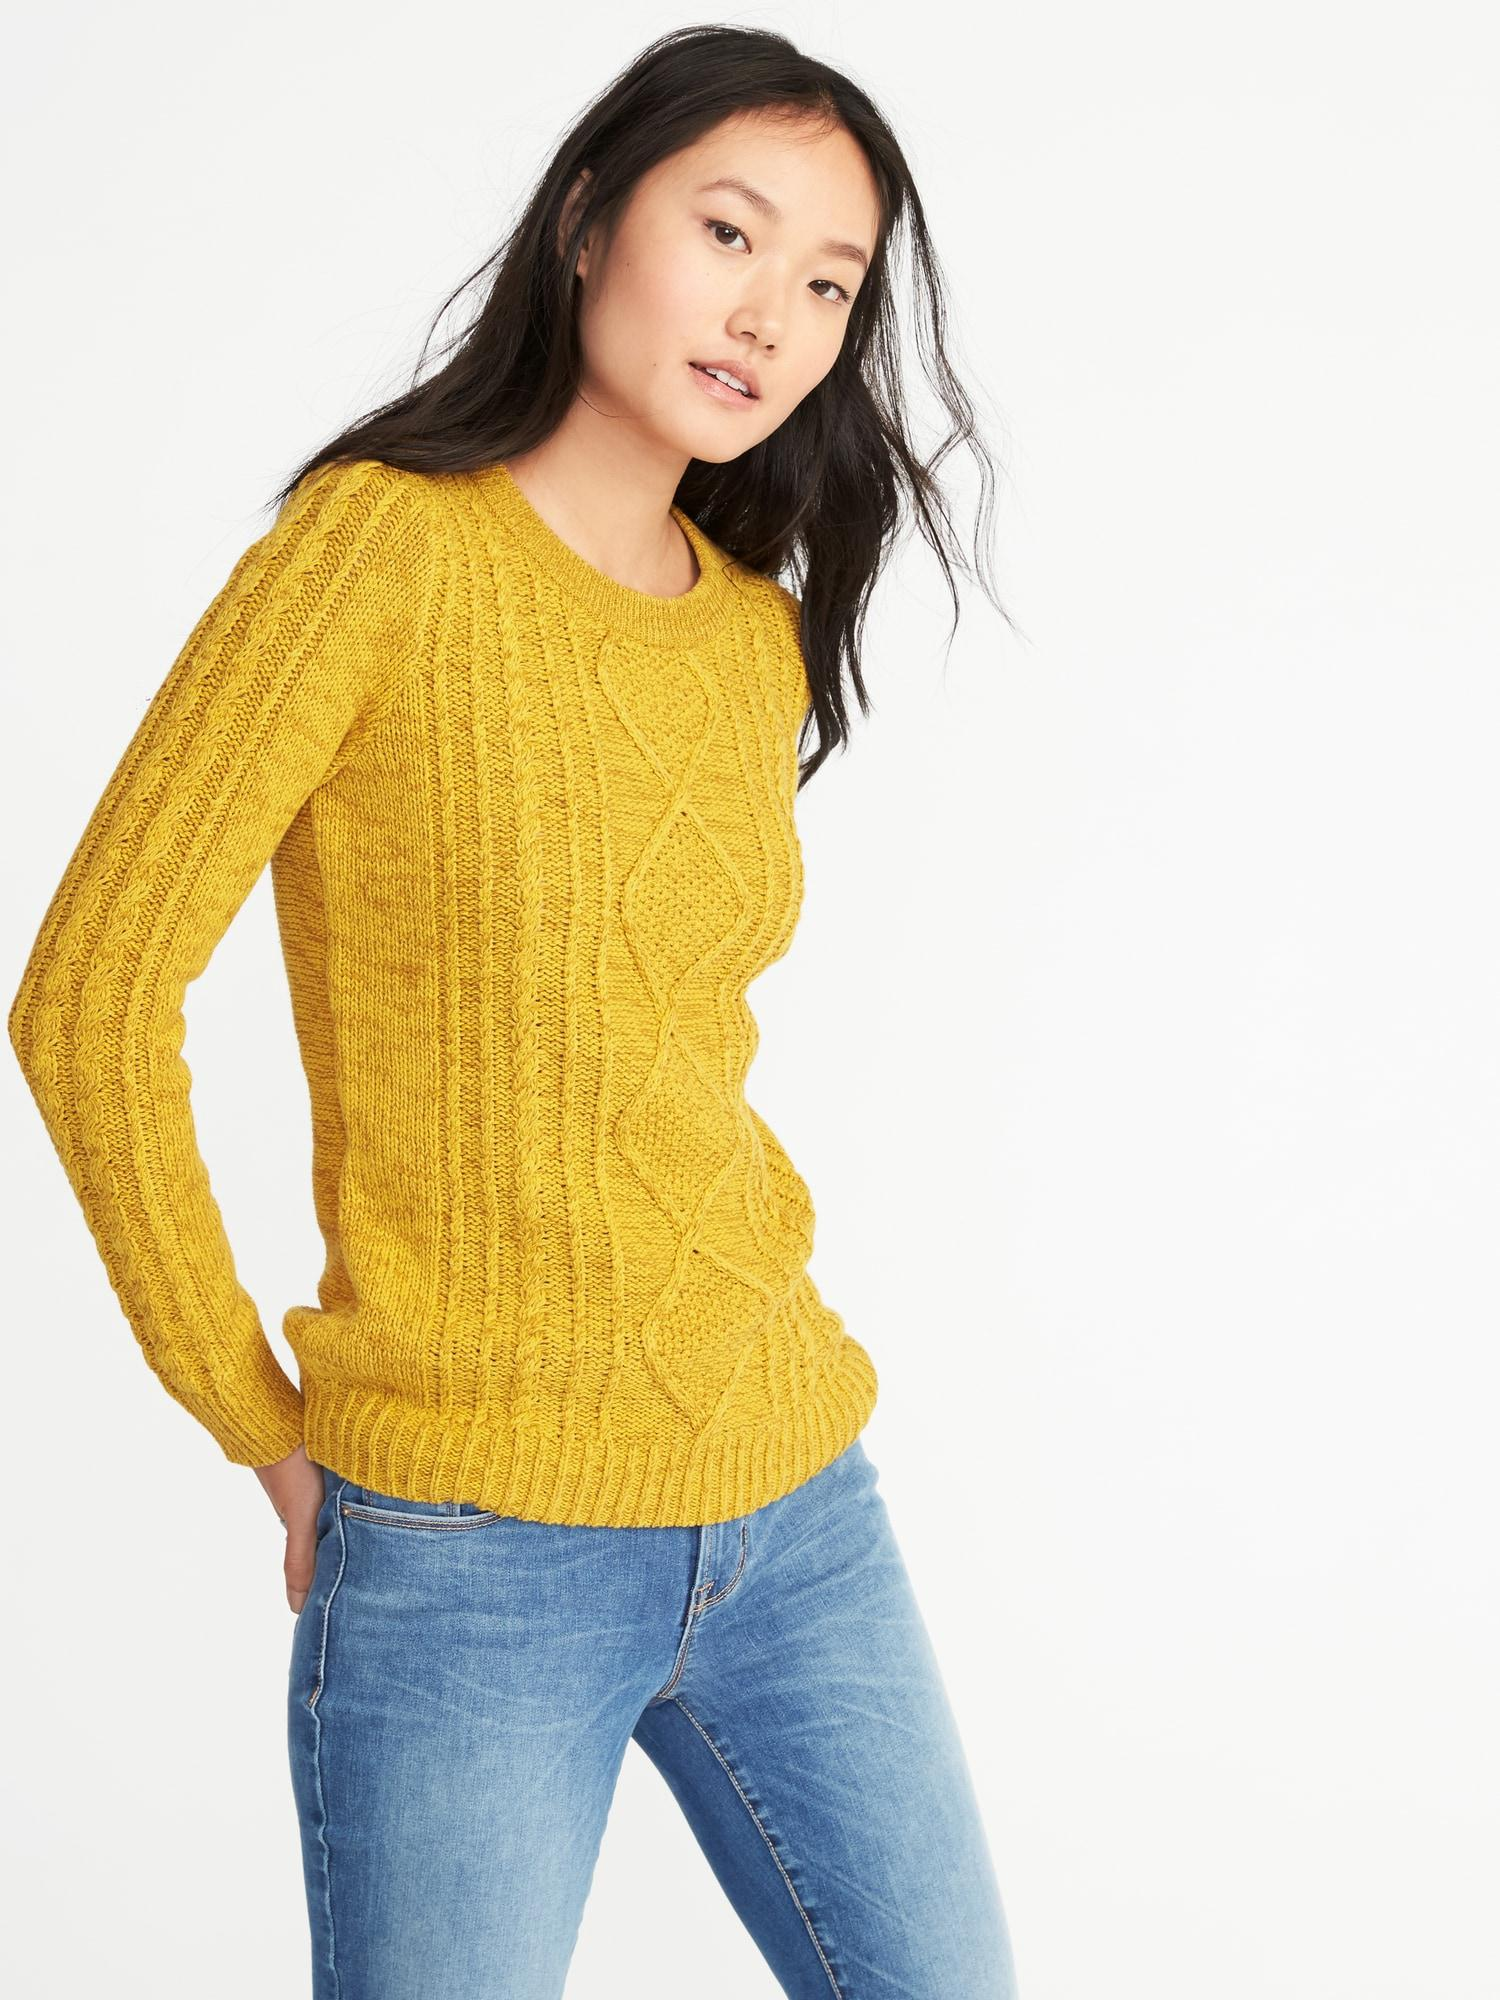 33579561bc8 Gallery. Previously sold at  Old Navy · Women s Cable Knit Sweaters Women s  Striped Turtleneck ...